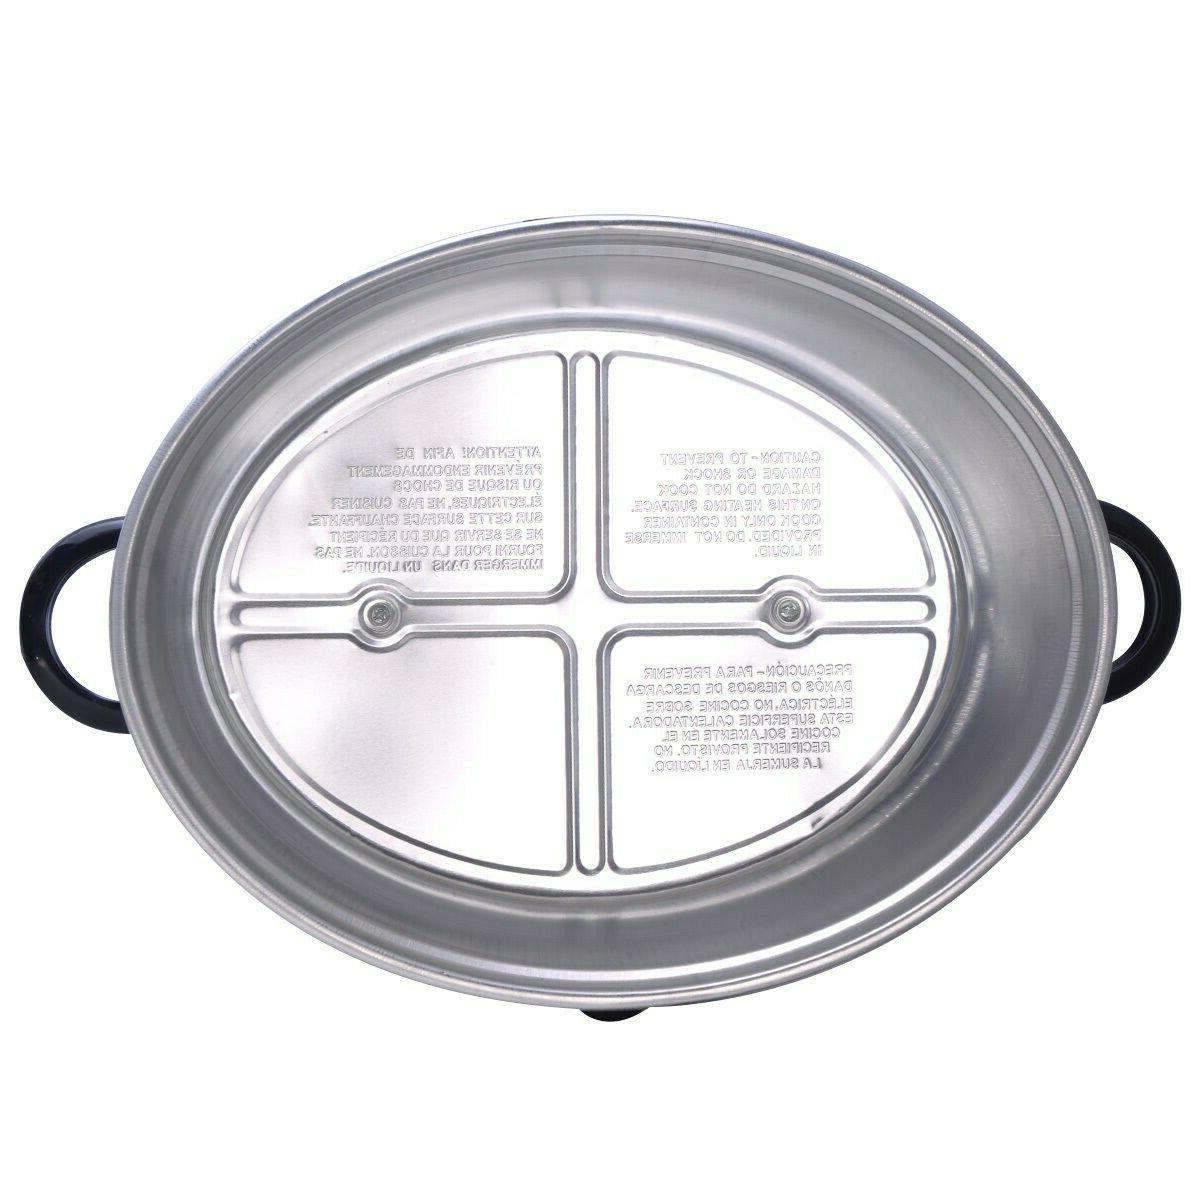 Electric Slow Cooker Shaped Stainless Steel Housing Glass QT